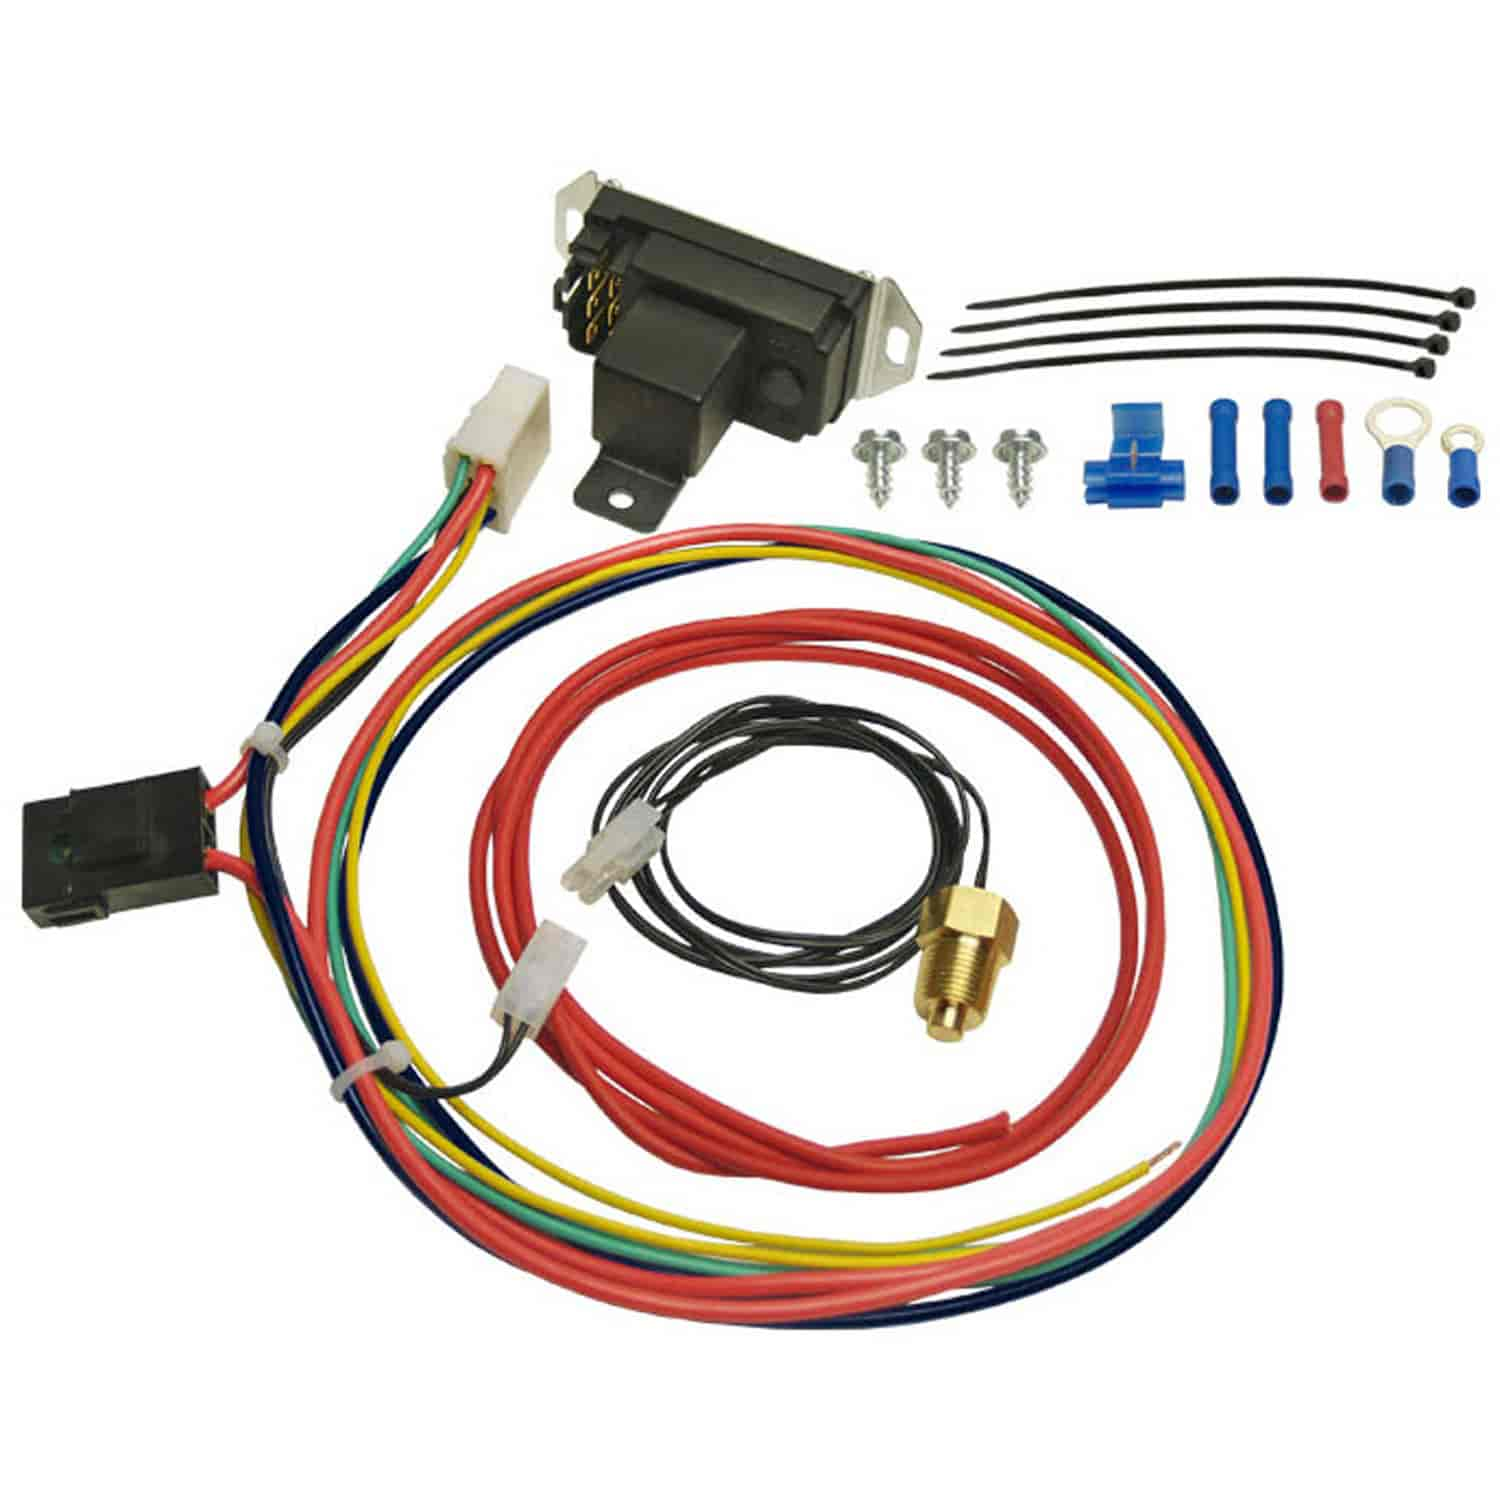 259 16749_1 jegs hot rod wiring harness wiring diagrams VW Wiring Harness Kits at n-0.co